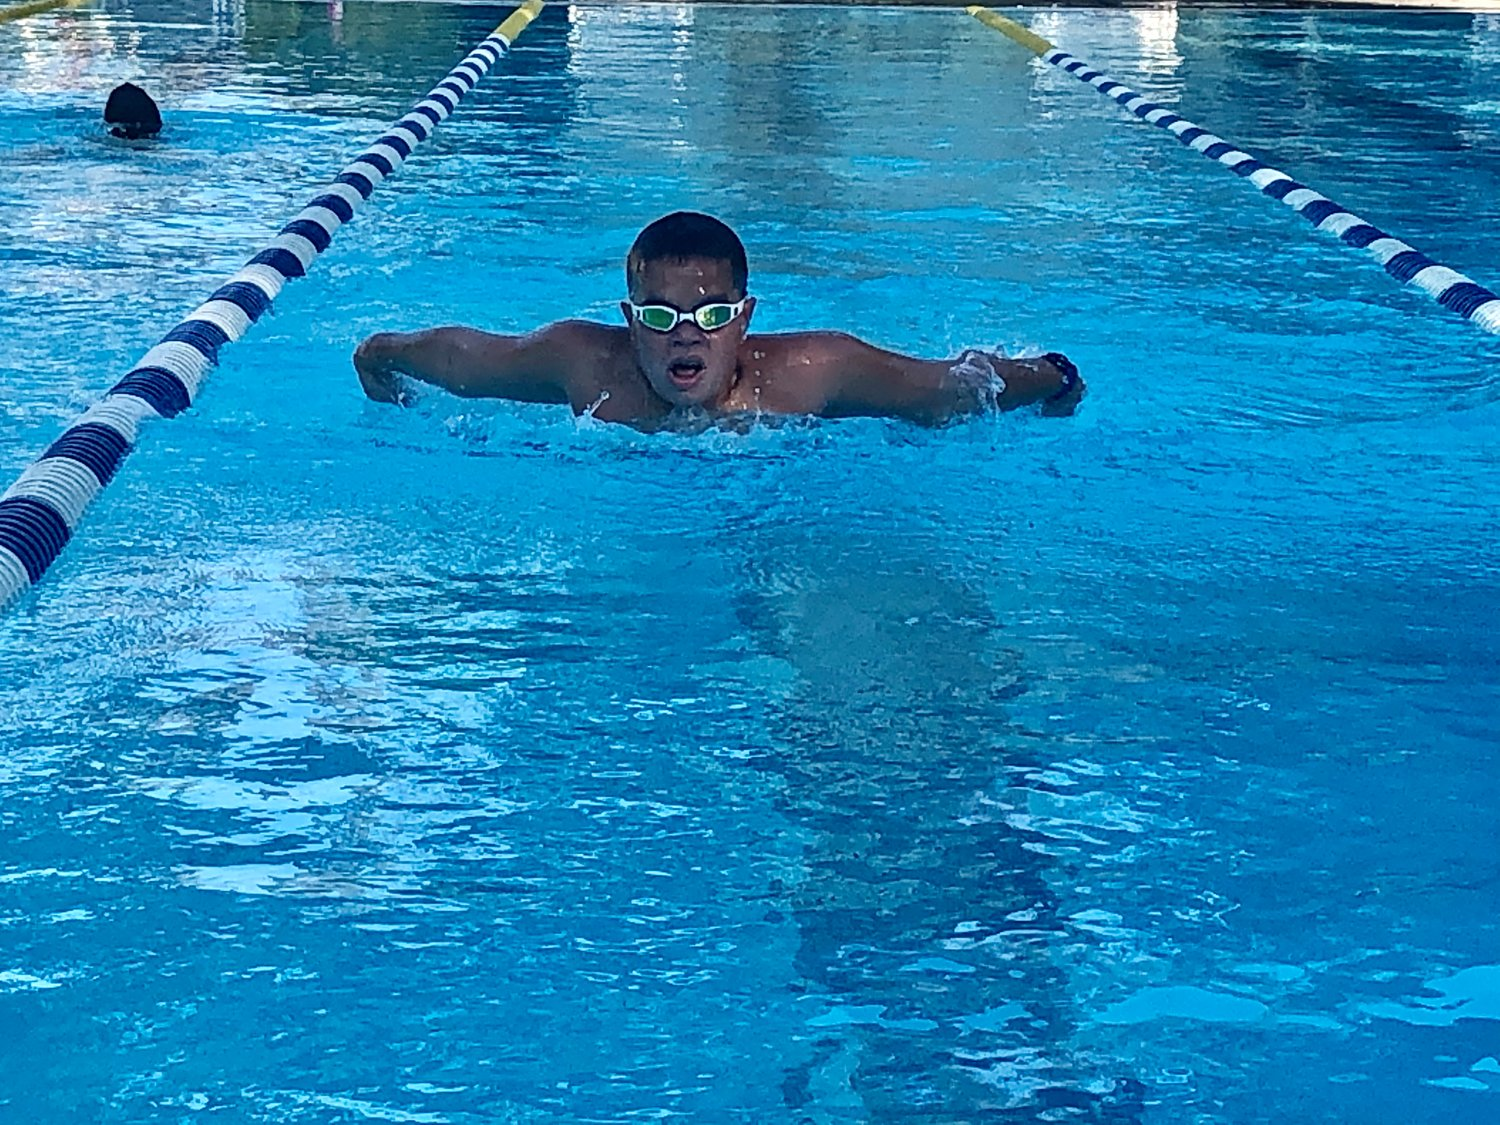 Jason Diaz was one of five young Lynbrook residents who got in the pool early on Aug. 17